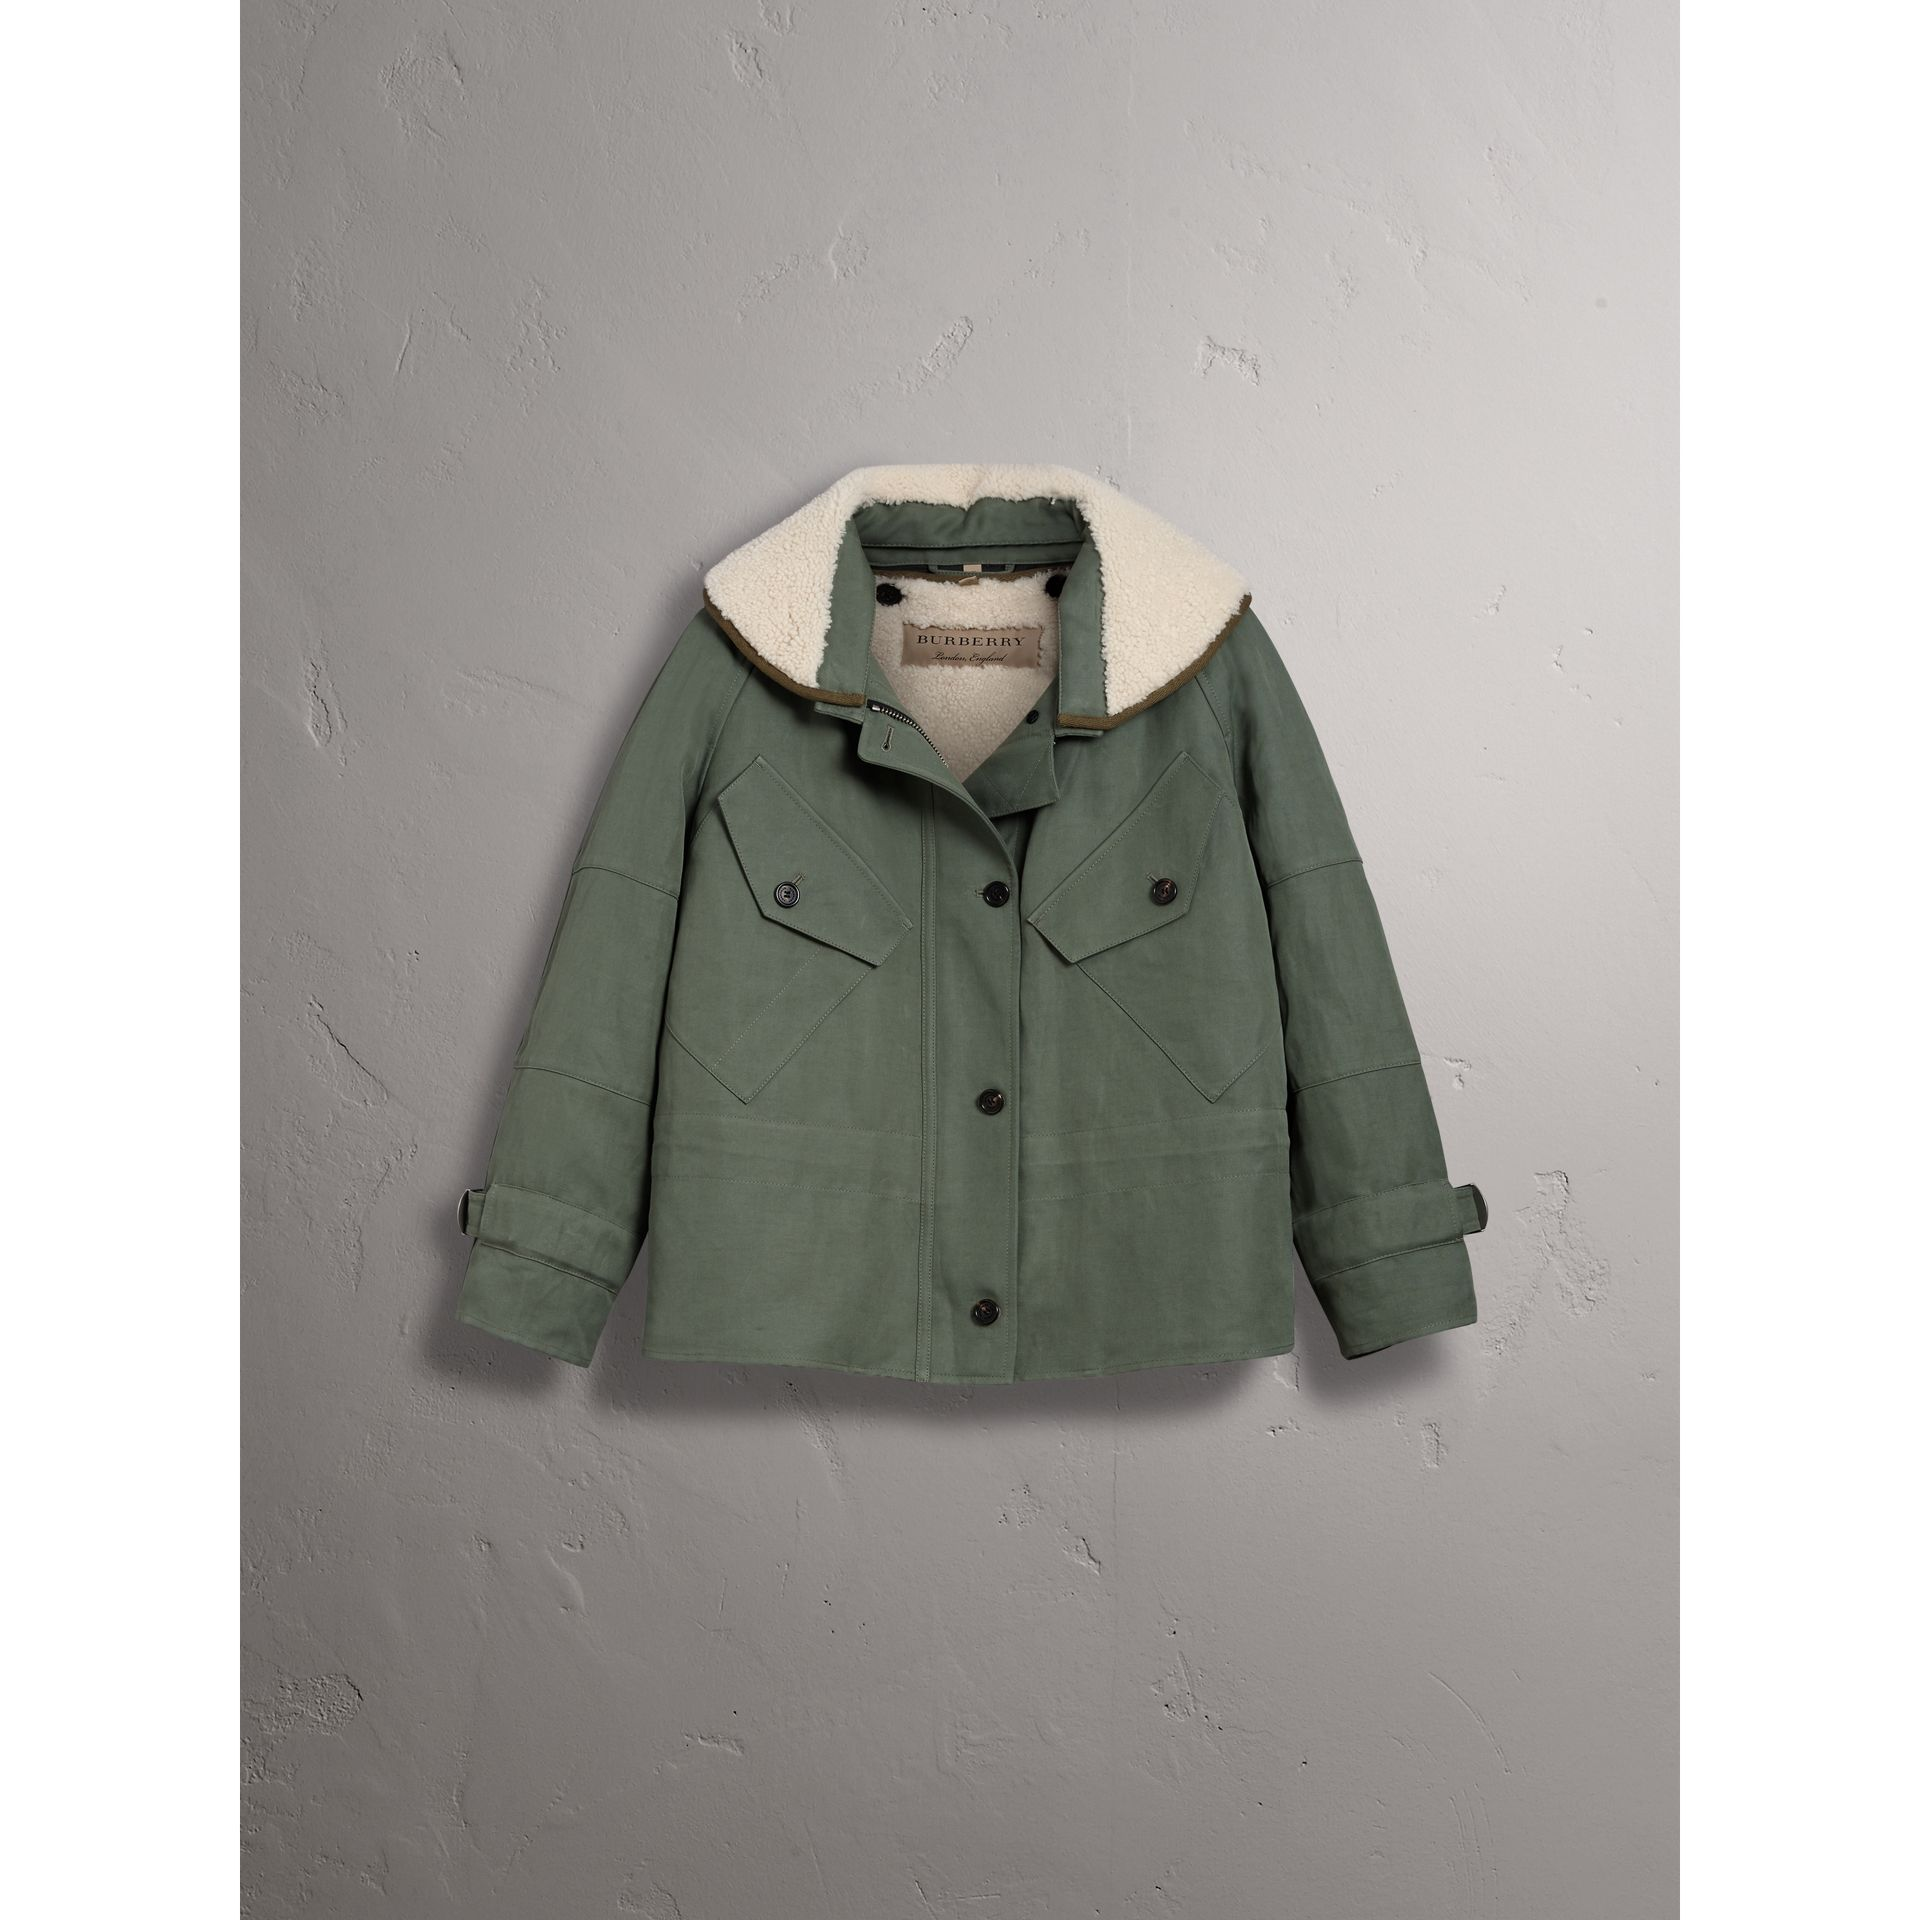 Ramie Cotton Jacket with Shearling Warmer in Slate Green - Women | Burberry United States - gallery image 3